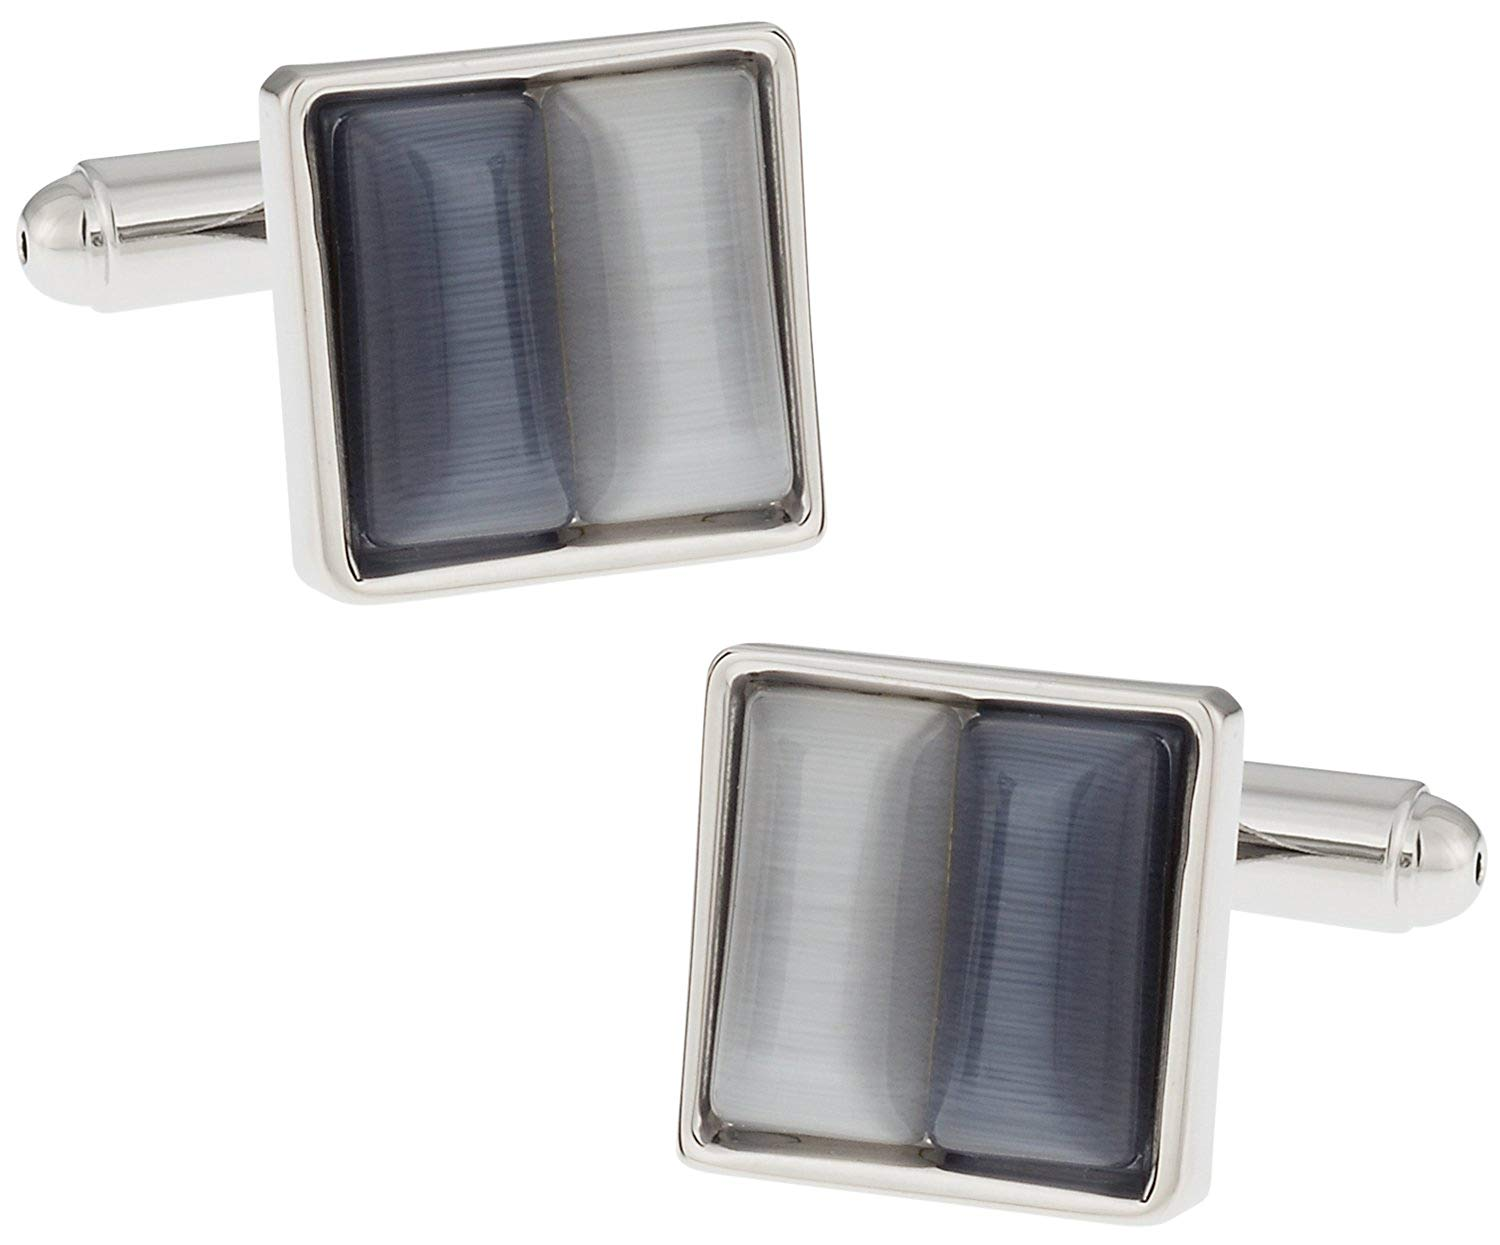 Cuff-Daddy Elegant Two-tone Gray & Silver Cufflinks with Presentation Box